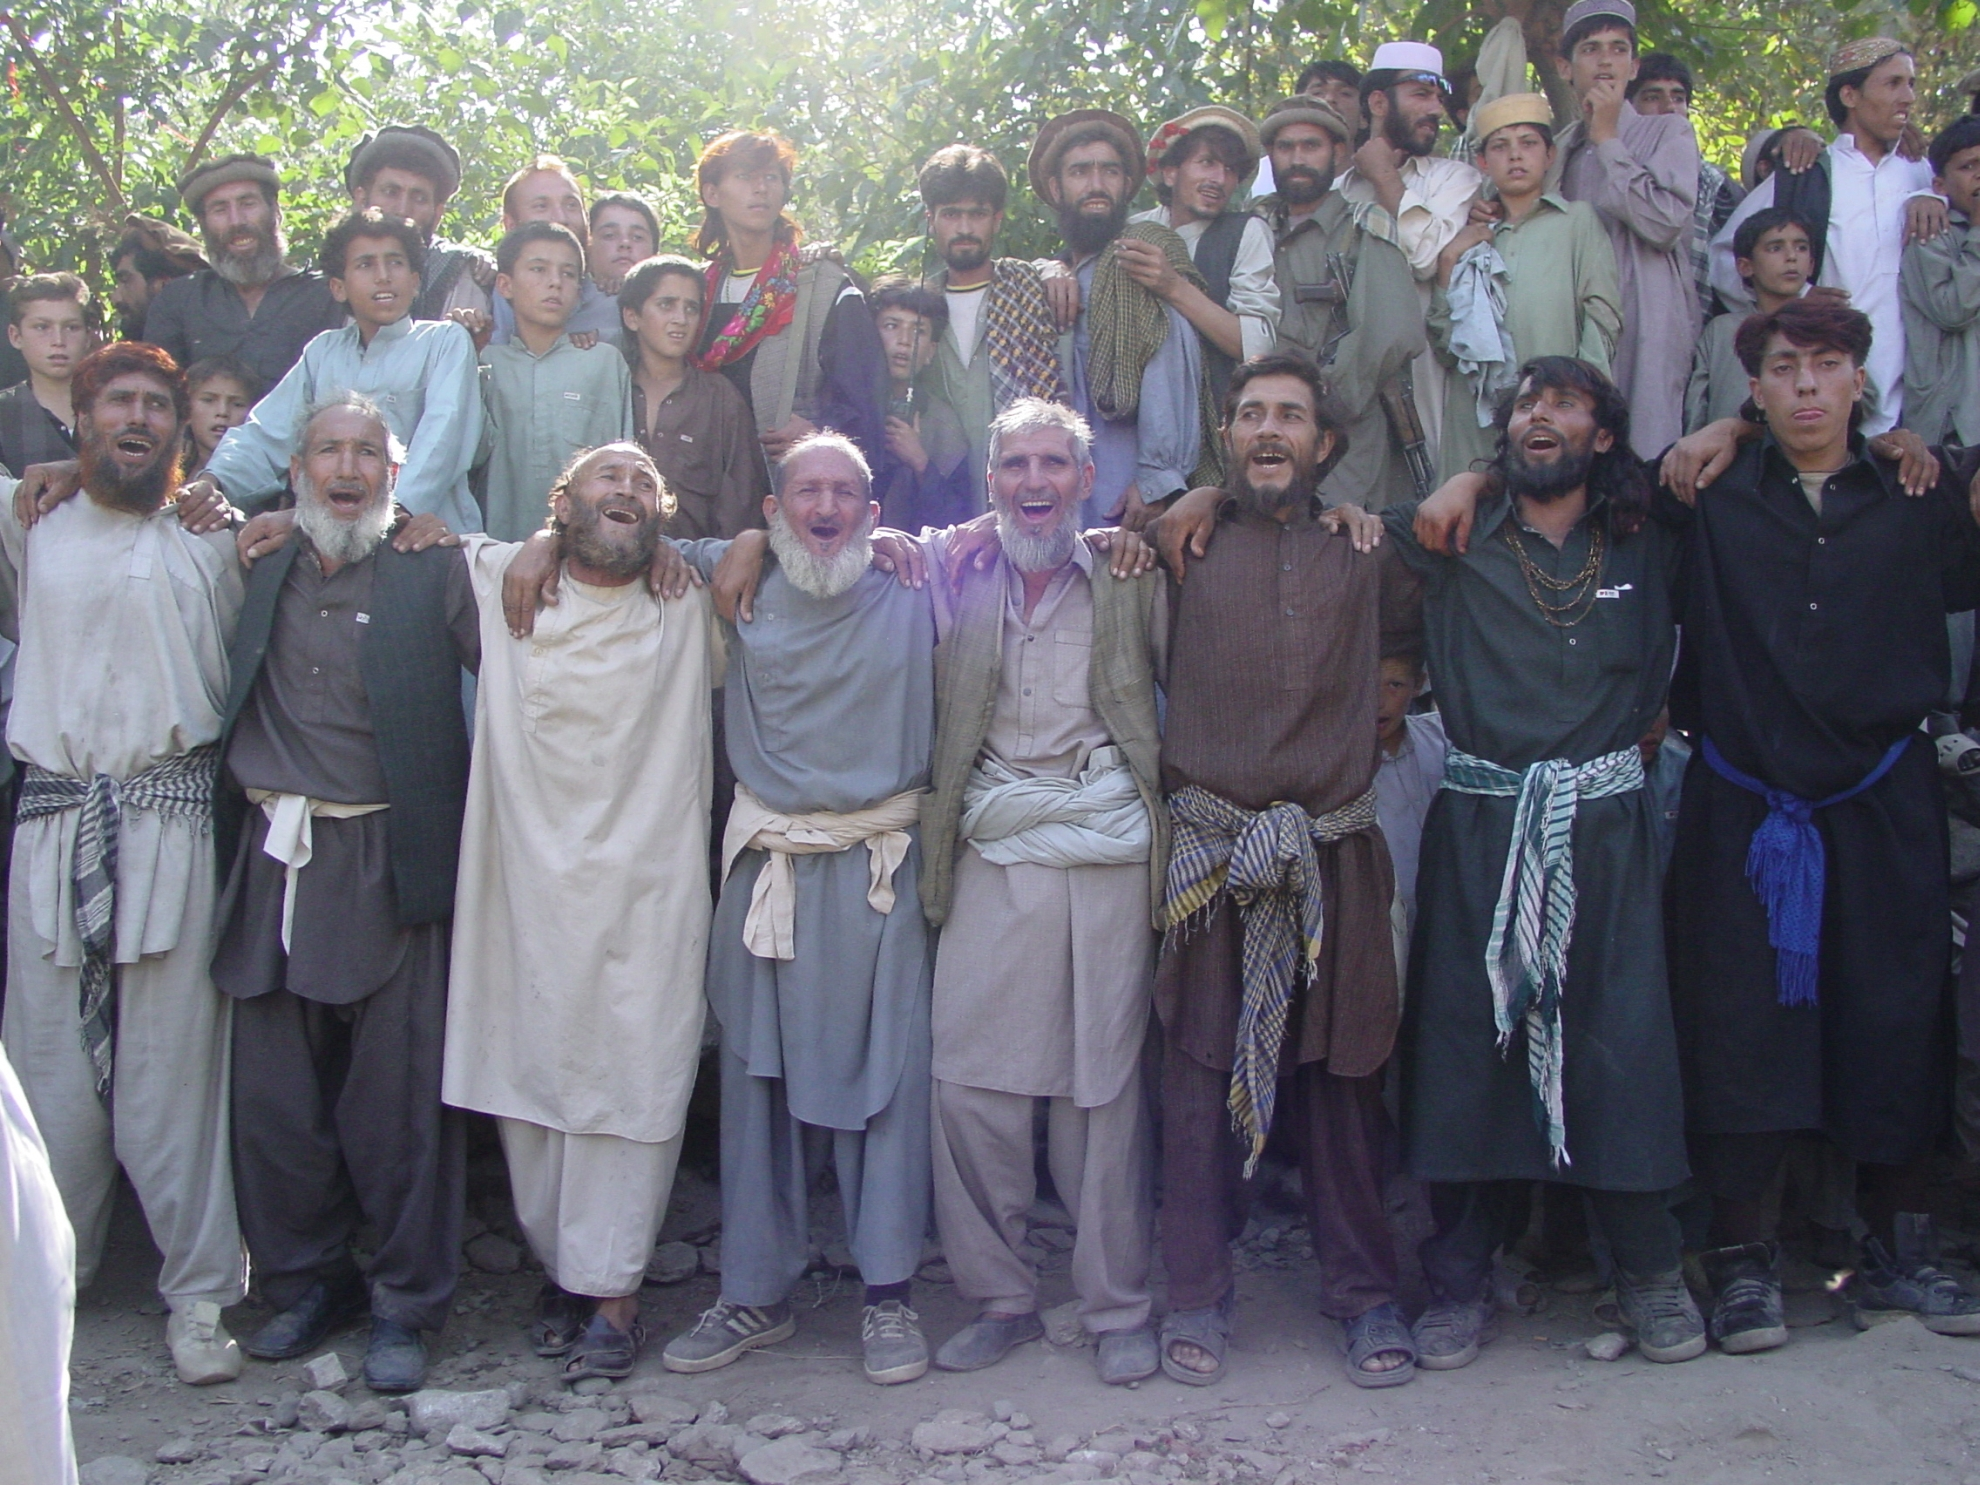 An Afghan wedding celebration can have hundreds of guests and is an expensive affair. Photo: Jens Kjær Jensen, 2003